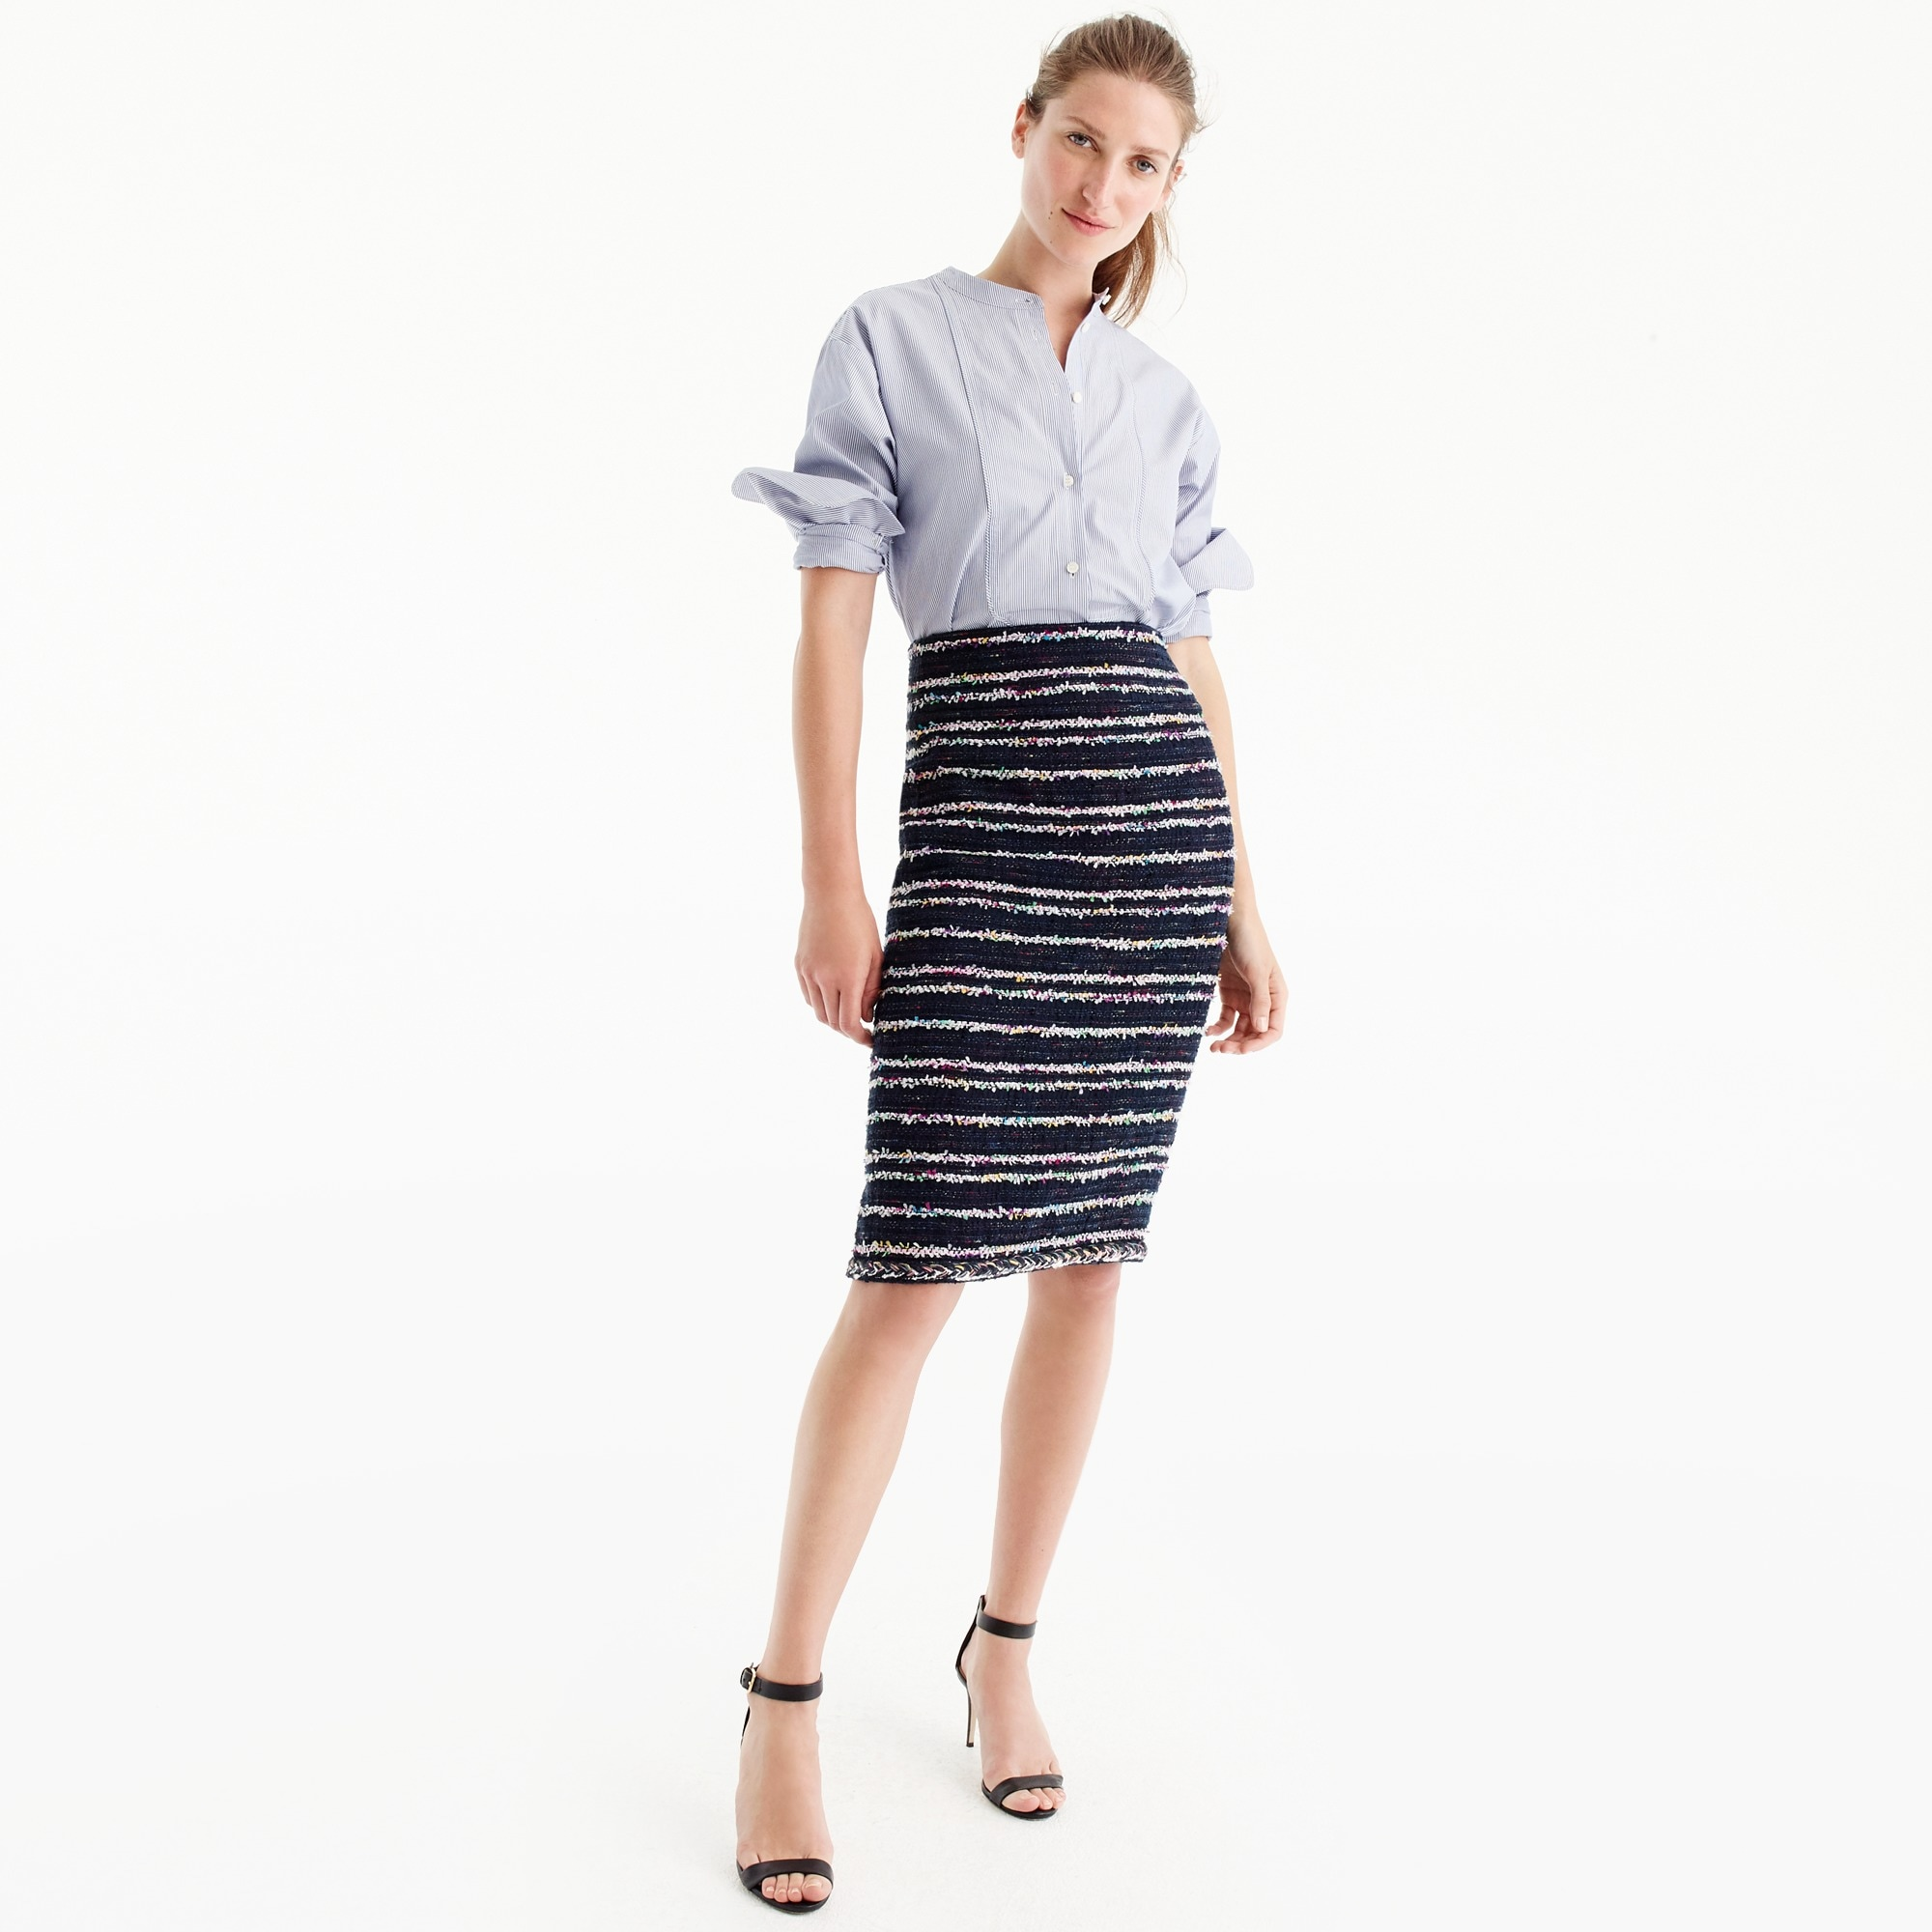 Pencil skirt in navy party tweed